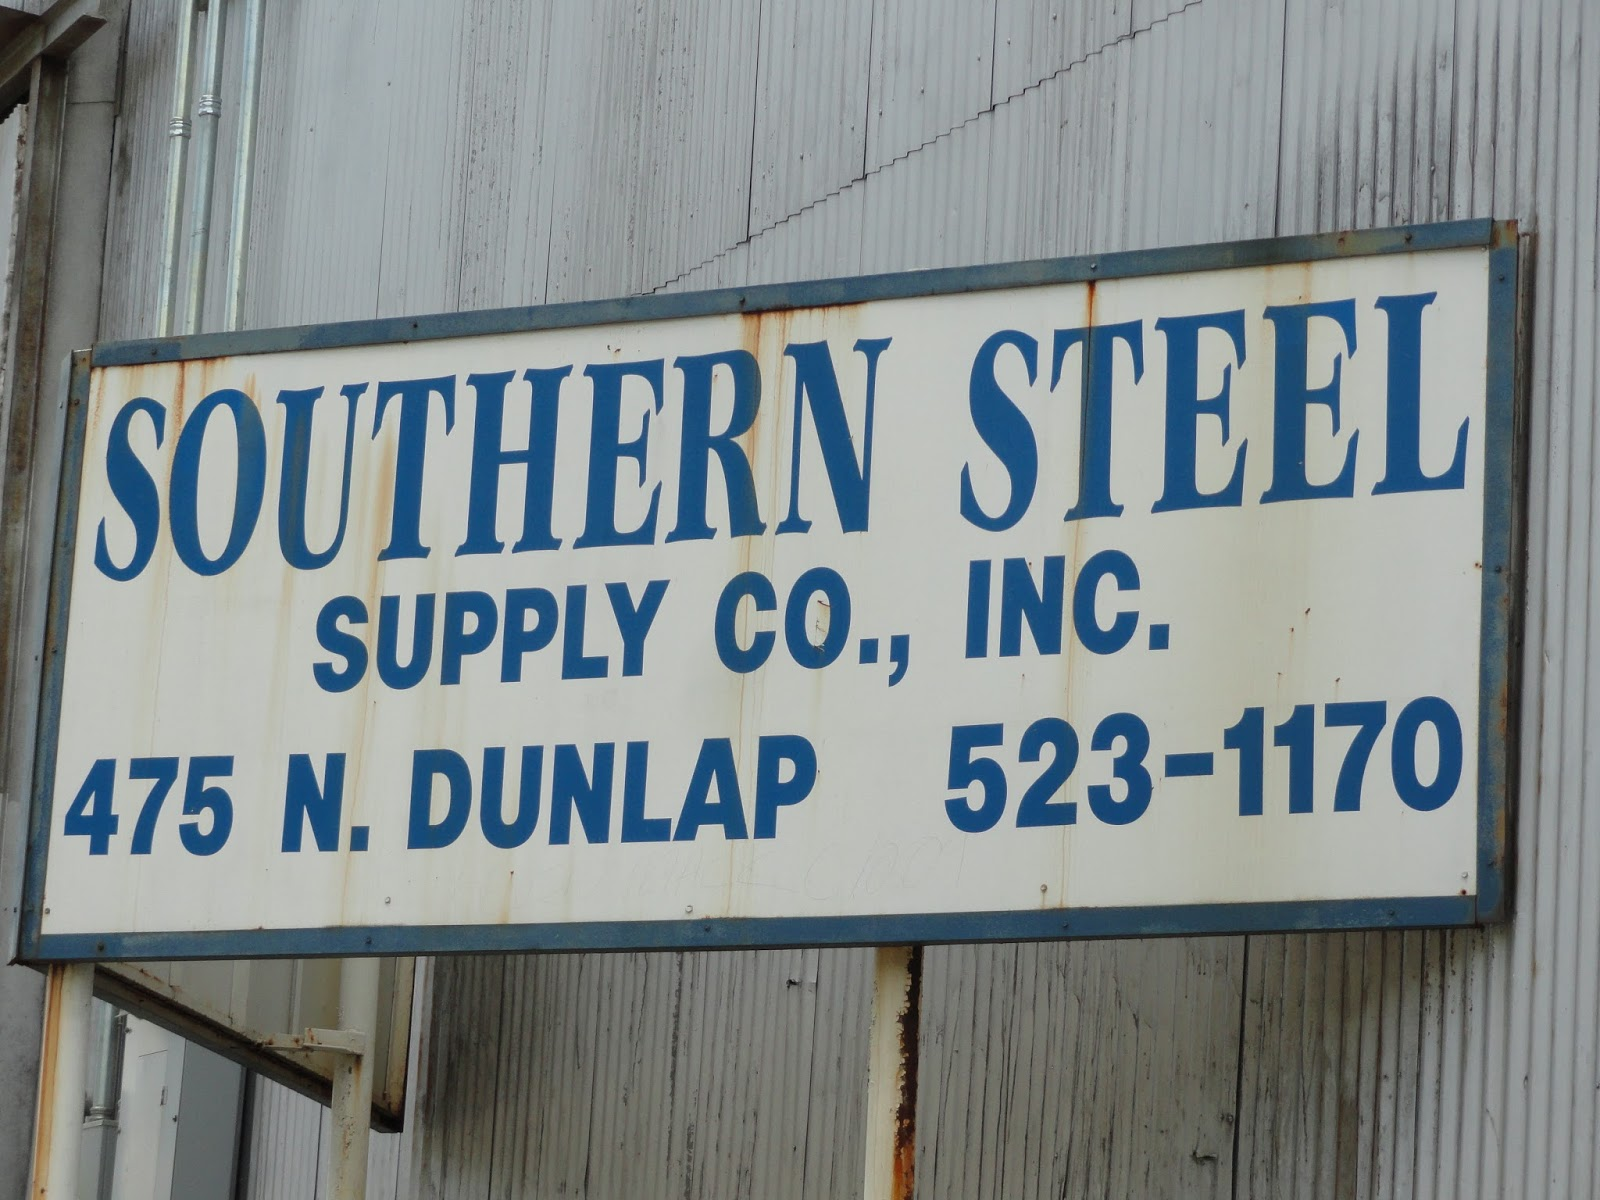 southern steel has long called n dunlap just south of north parkway home go to their website to see their actual logo which is actually designed in a